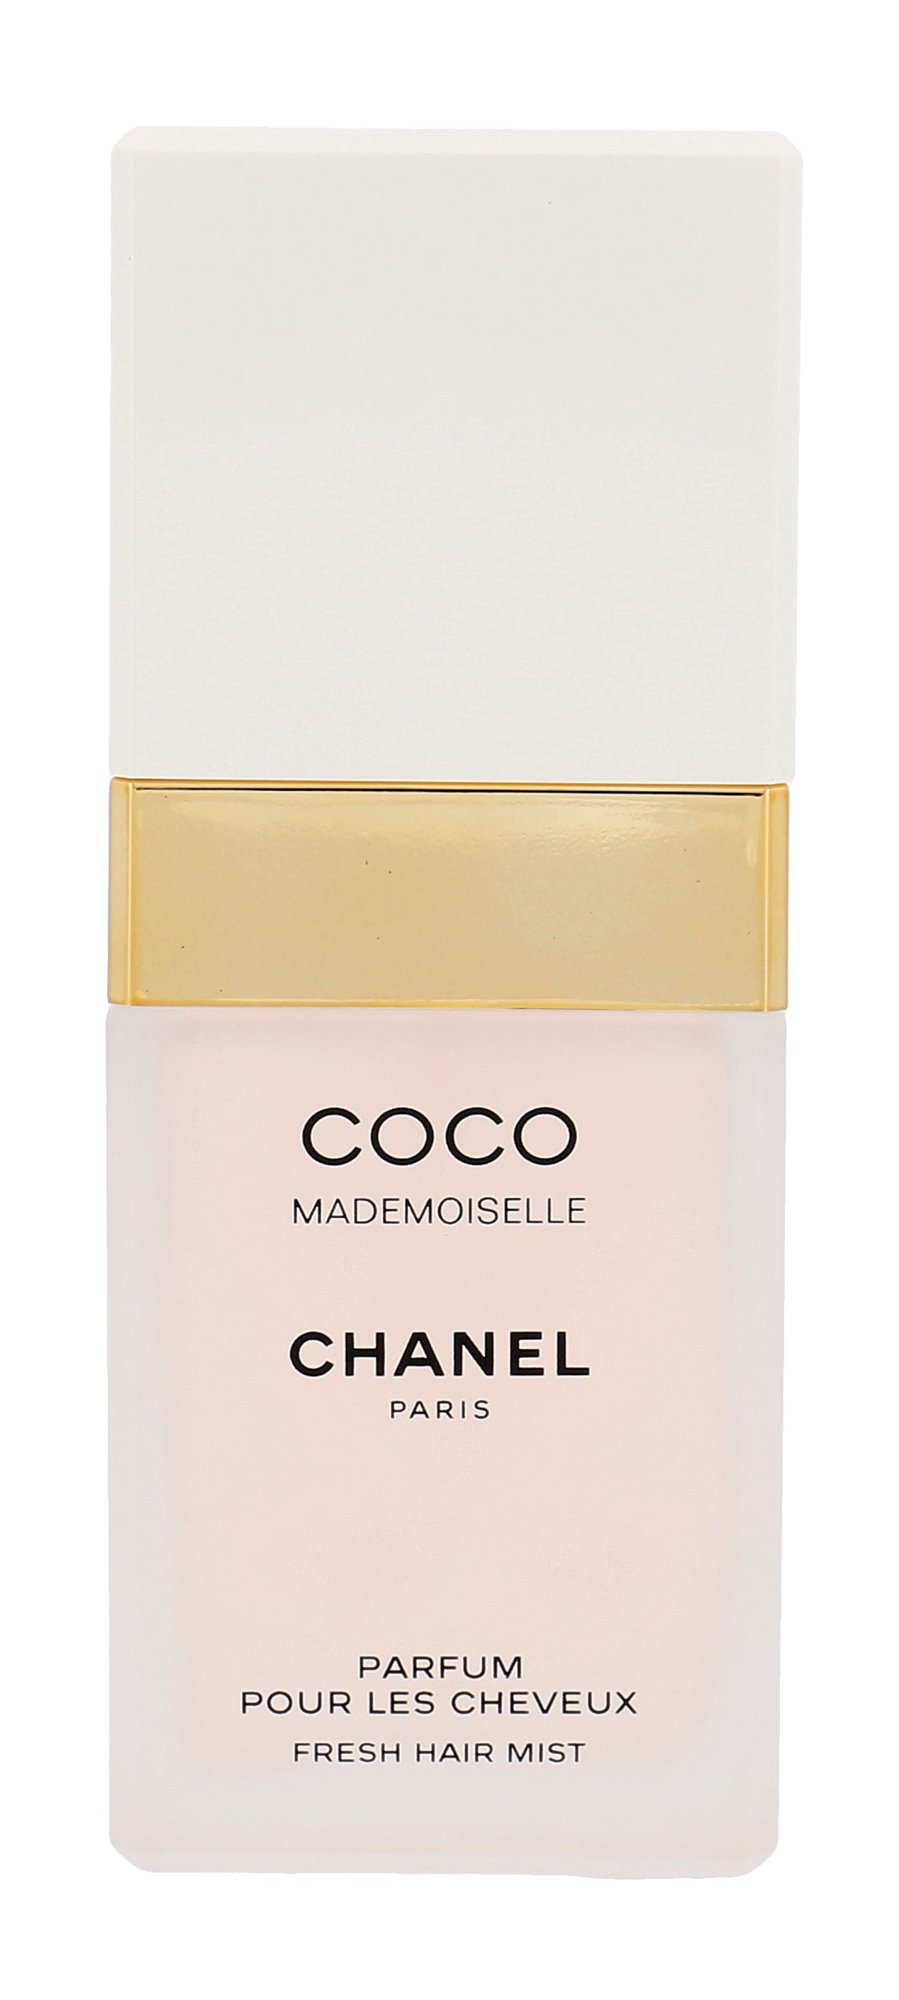 Chanel Coco Mademoiselle Hair mist 35ml